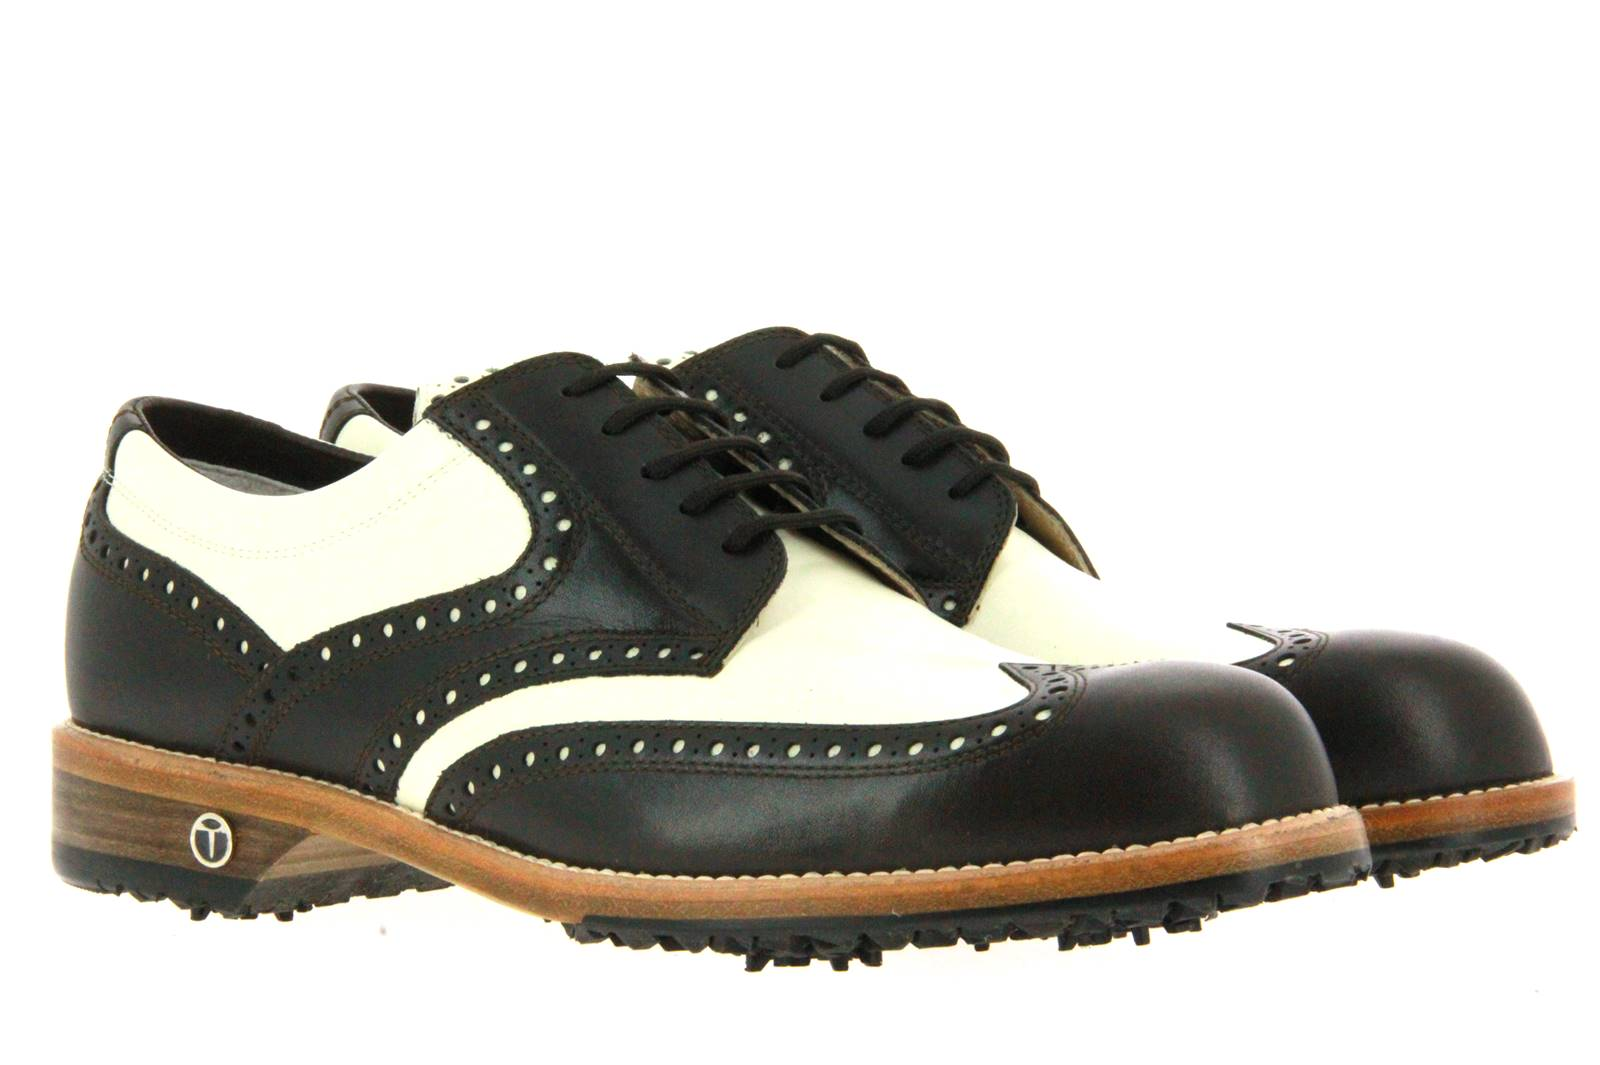 Tee Golf Shoes Herren- Golfschuh TOMMY CHOCOLATE PICCIONE (46½)